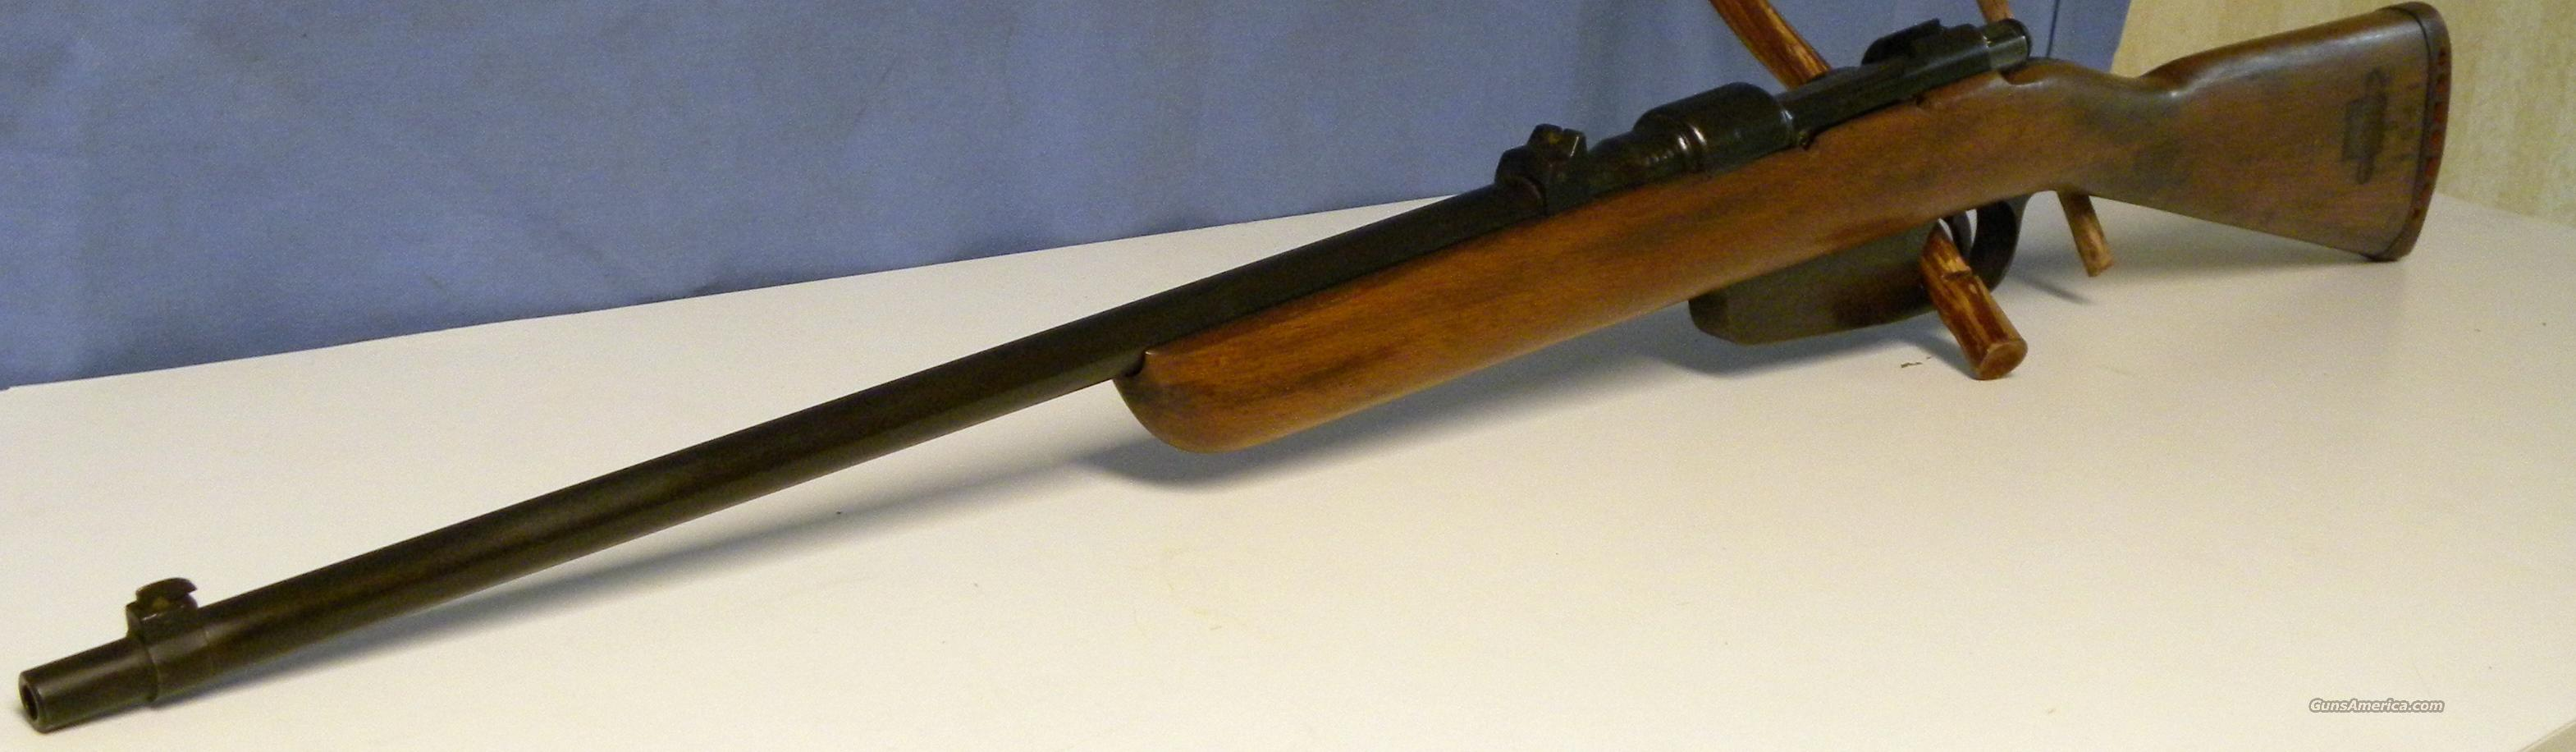 Carcano Finnish 91/38 Terni 7.35   Guns > Rifles > Military Misc. Rifles Non-US > Other